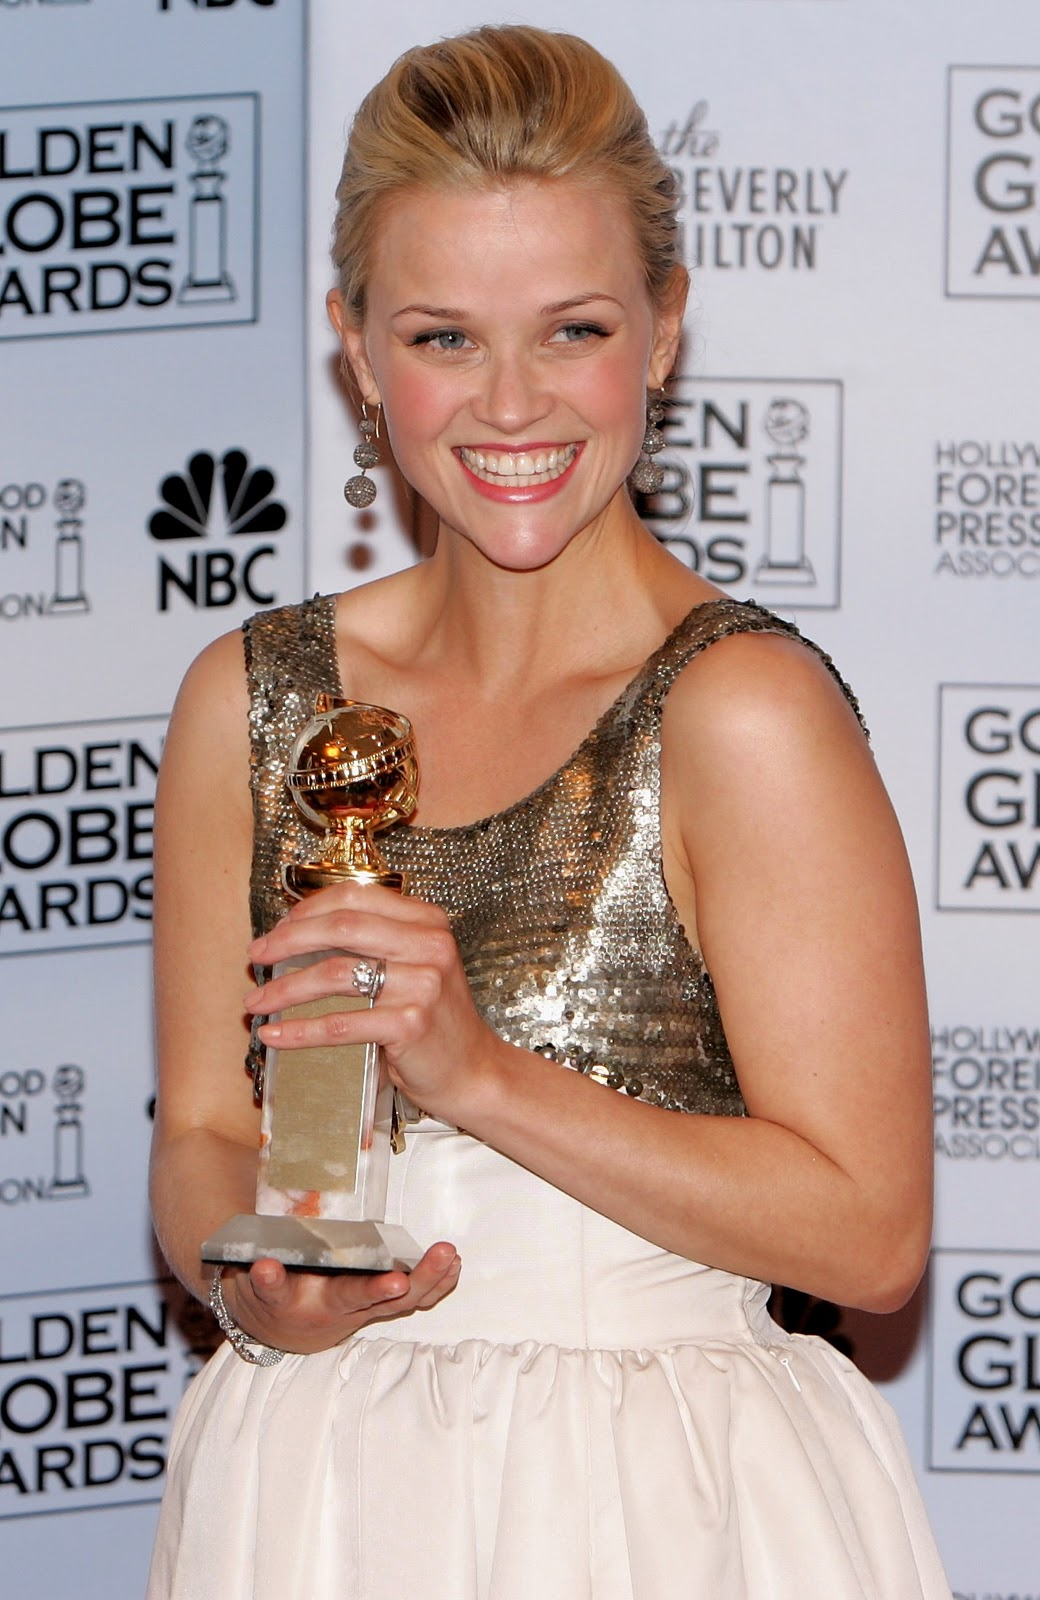 http://2.bp.blogspot.com/_WDCWEjl45FQ/TUssOT9-4KI/AAAAAAAAEPk/gHfMUL9PnNc/s1600/reese-witherspoon-golden-globes-3.jpg